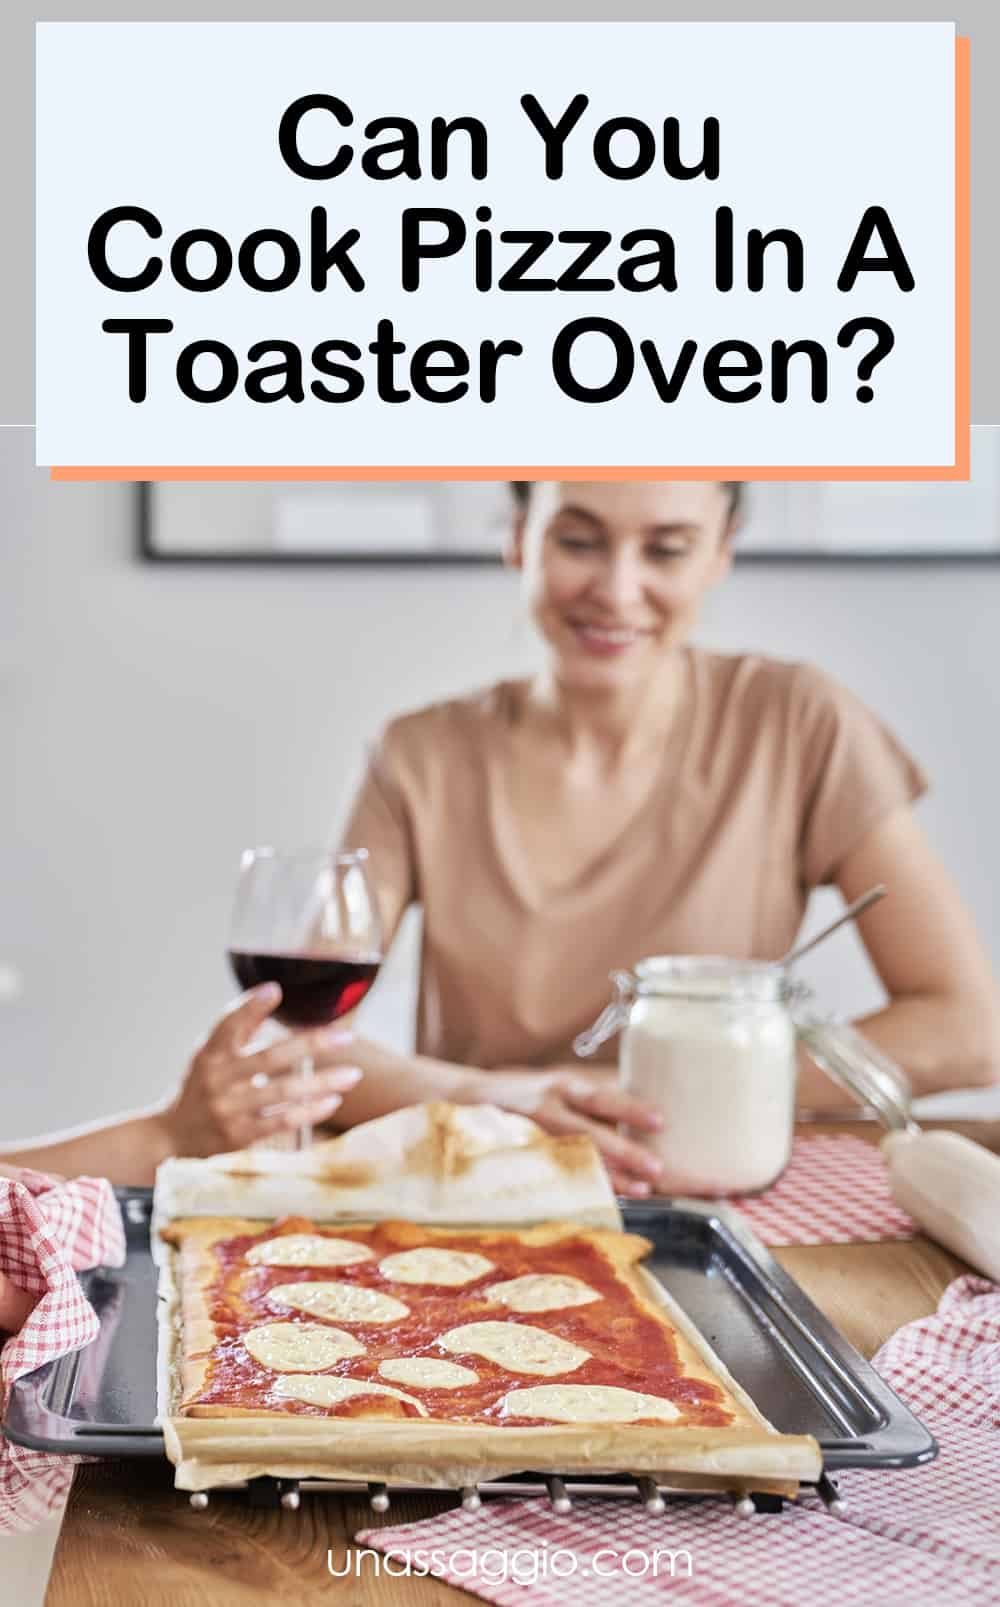 Can You Cook Pizza In A Toaster Oven?